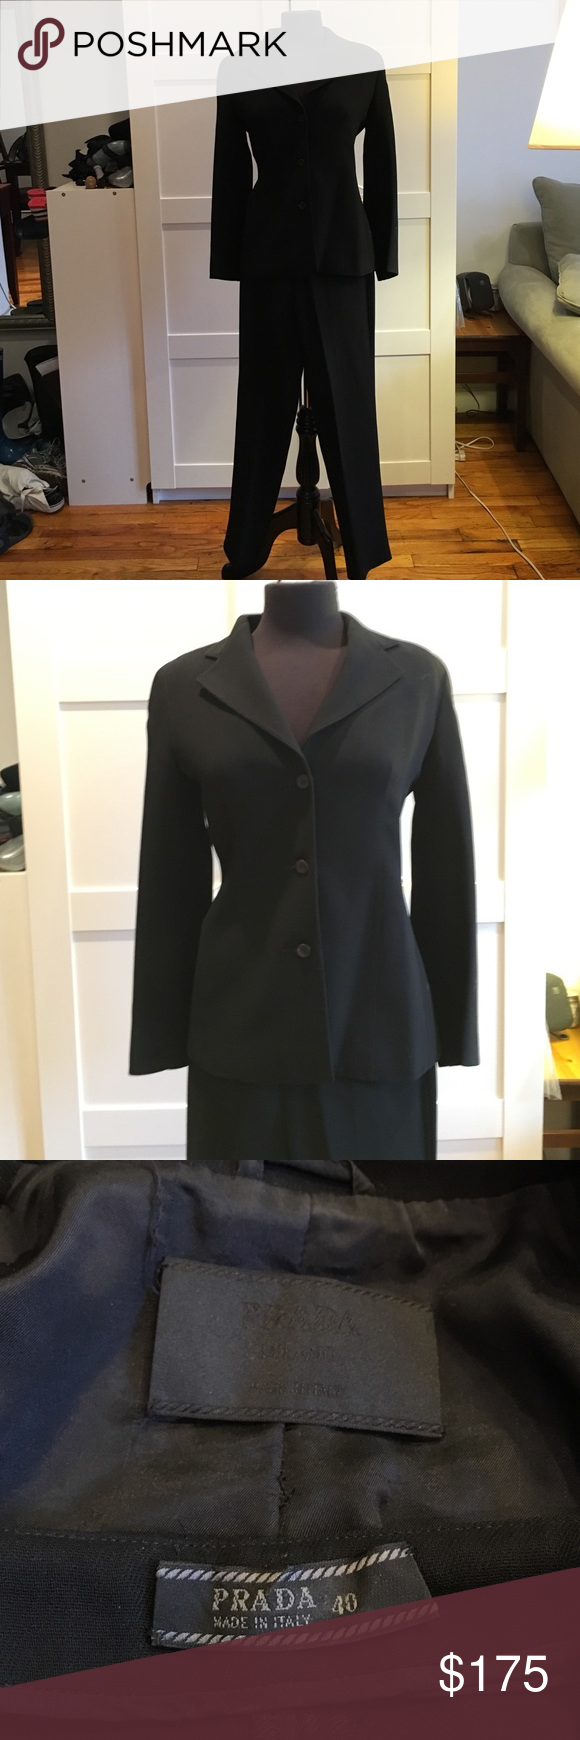 """Prada pantsuit Prada power suit. Perfect for that big interview, important presentation or power lunch. Jacket is a size 42 (probably equivalent to a 4 or 6) -shoulders 17"""", sleeve 23"""" , pants size 40 (probably equivalent to a 2 or 4) - waist 27"""", inseam 30"""". Prada Other"""